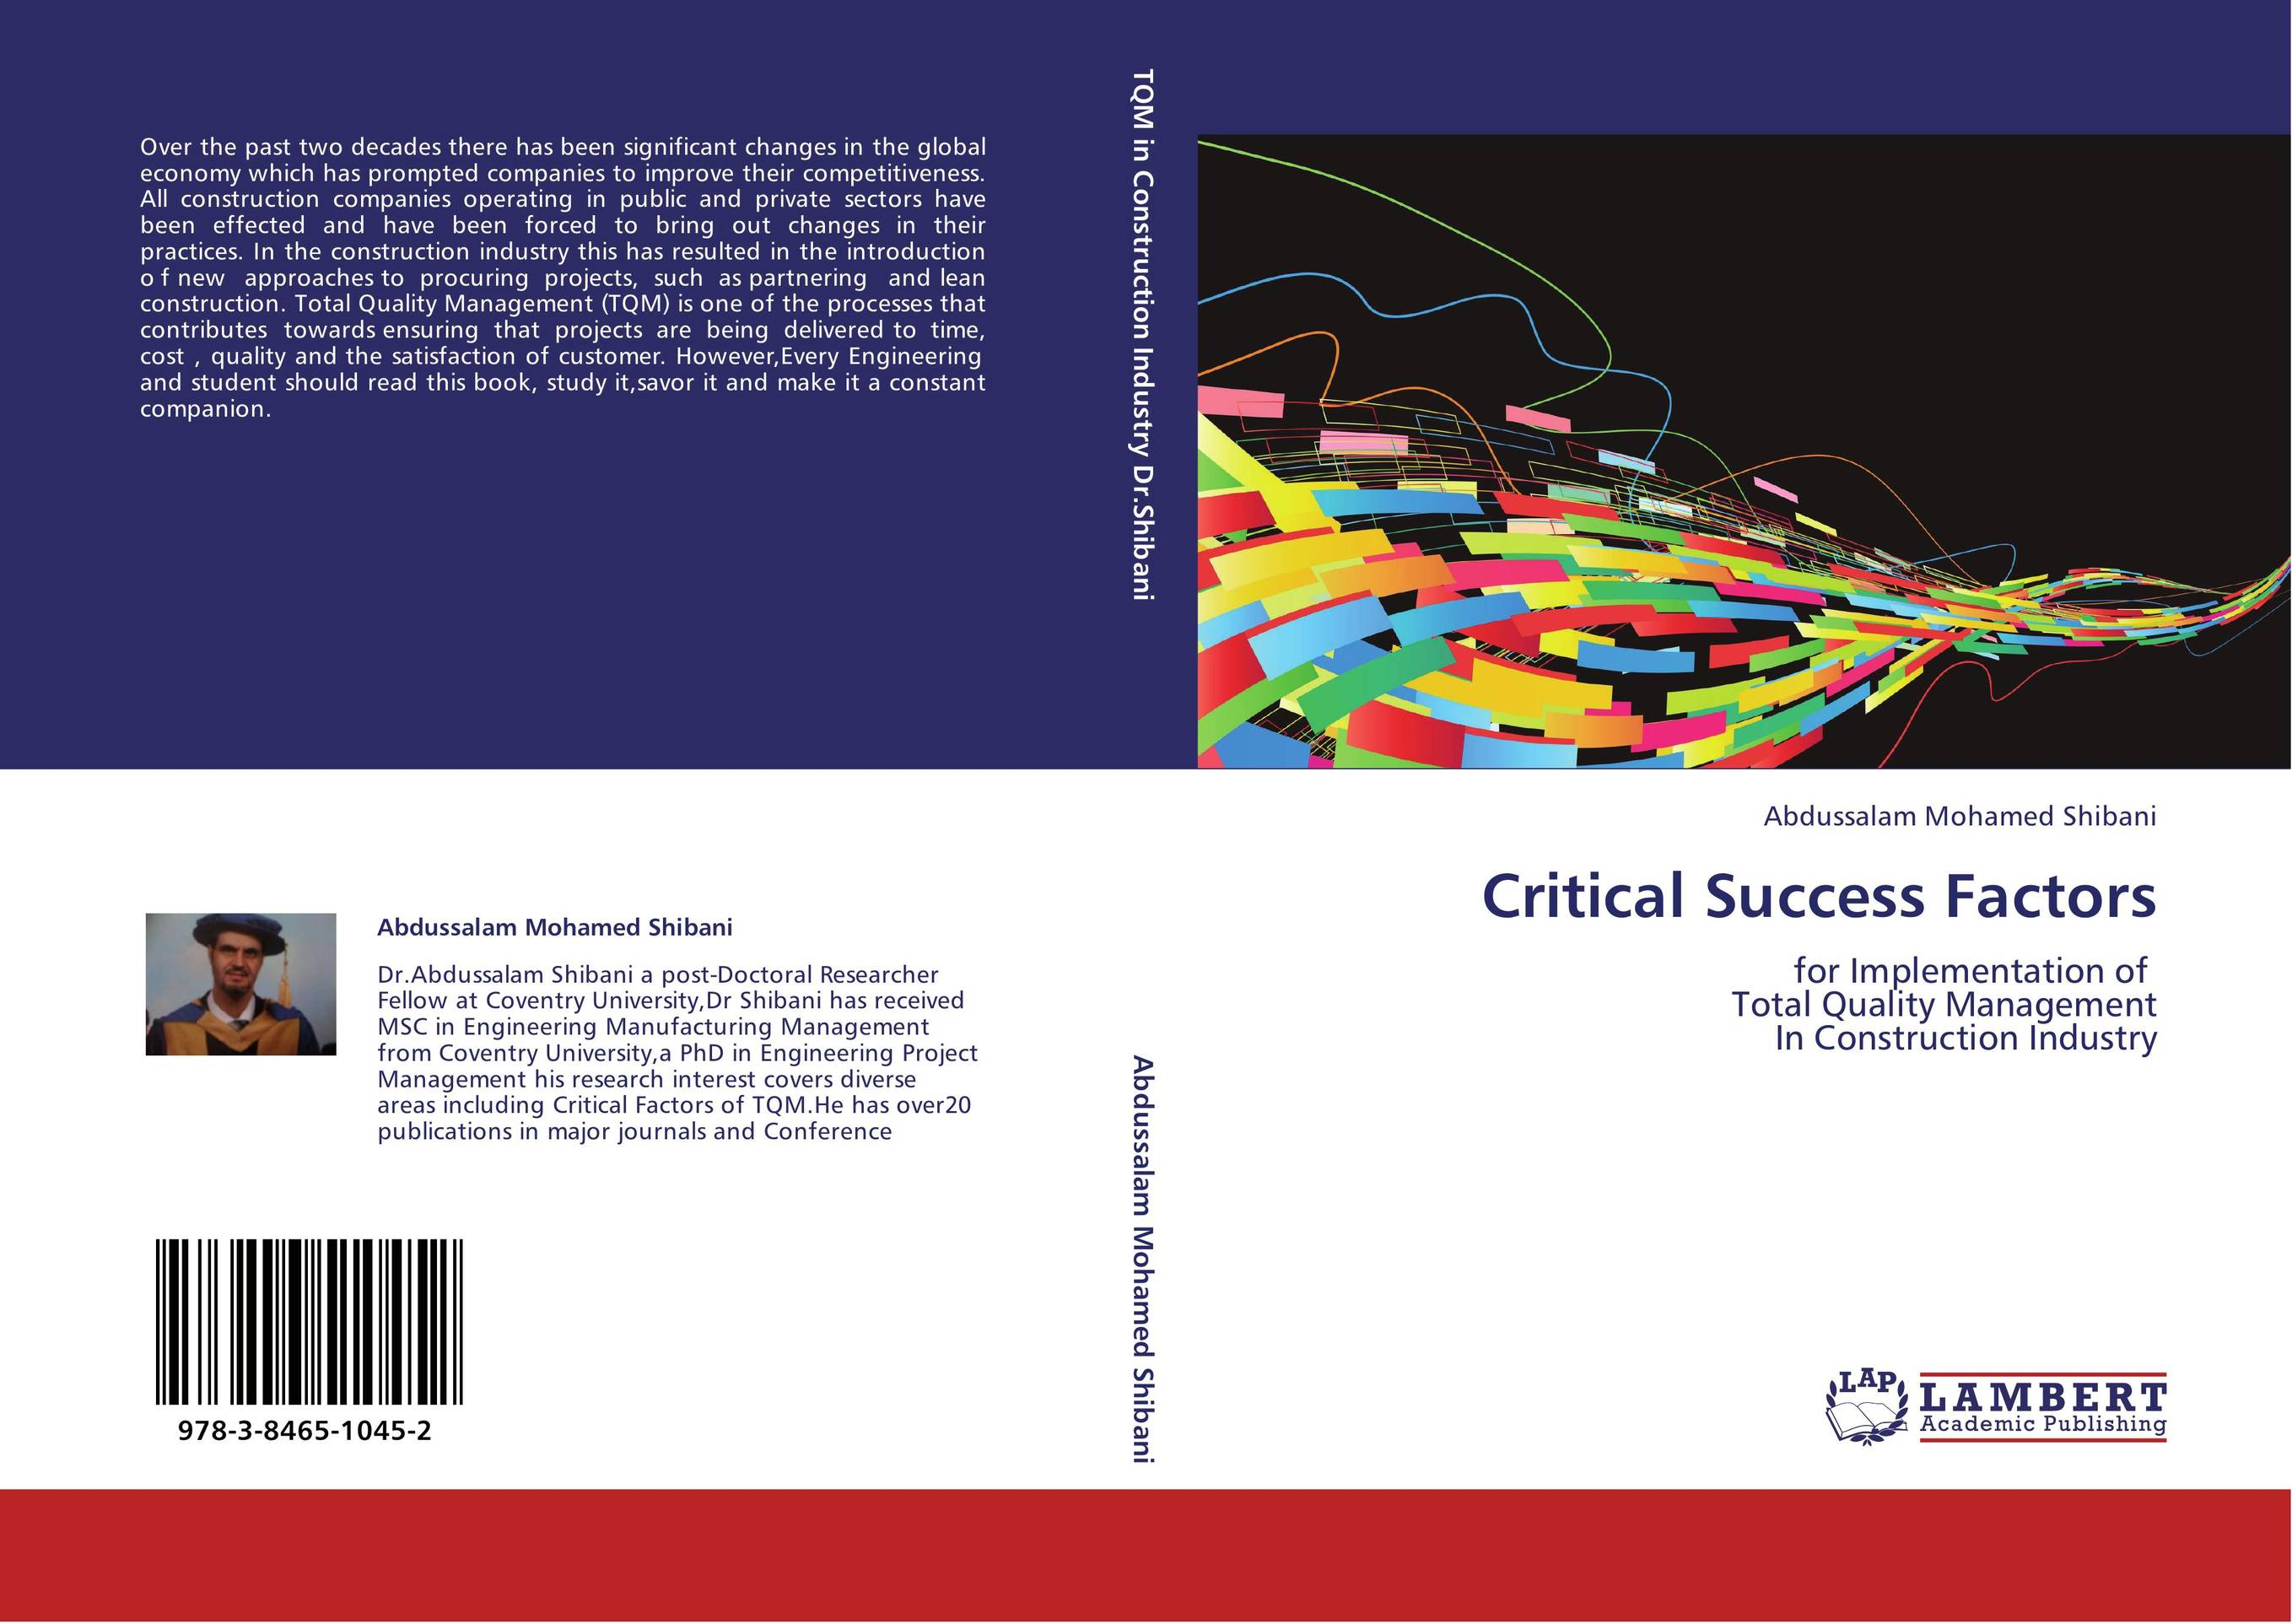 criticall success factors of aldi List of sample kpis in 5 perspectives of bsc (strategy and key success factors) and critical success factors (csfs.